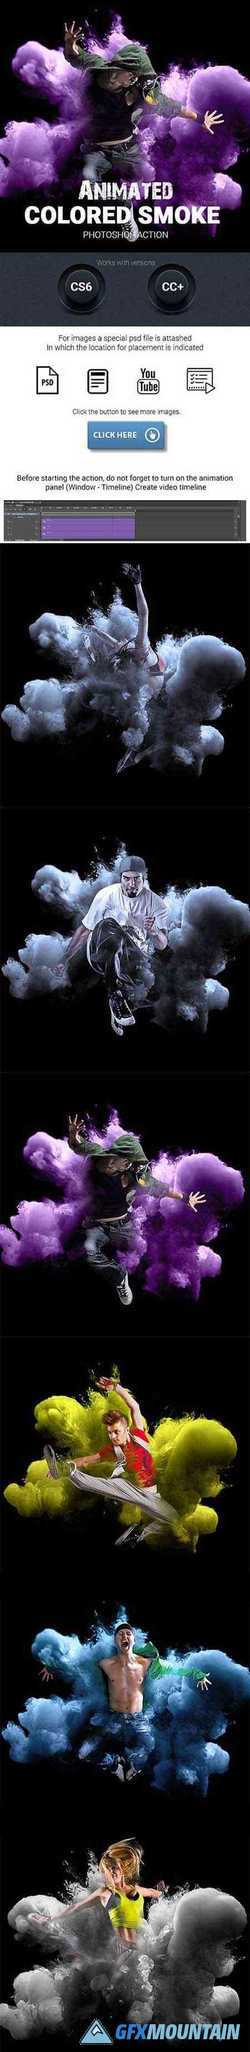 Animated Colored Smoke Photoshop Action 24833037